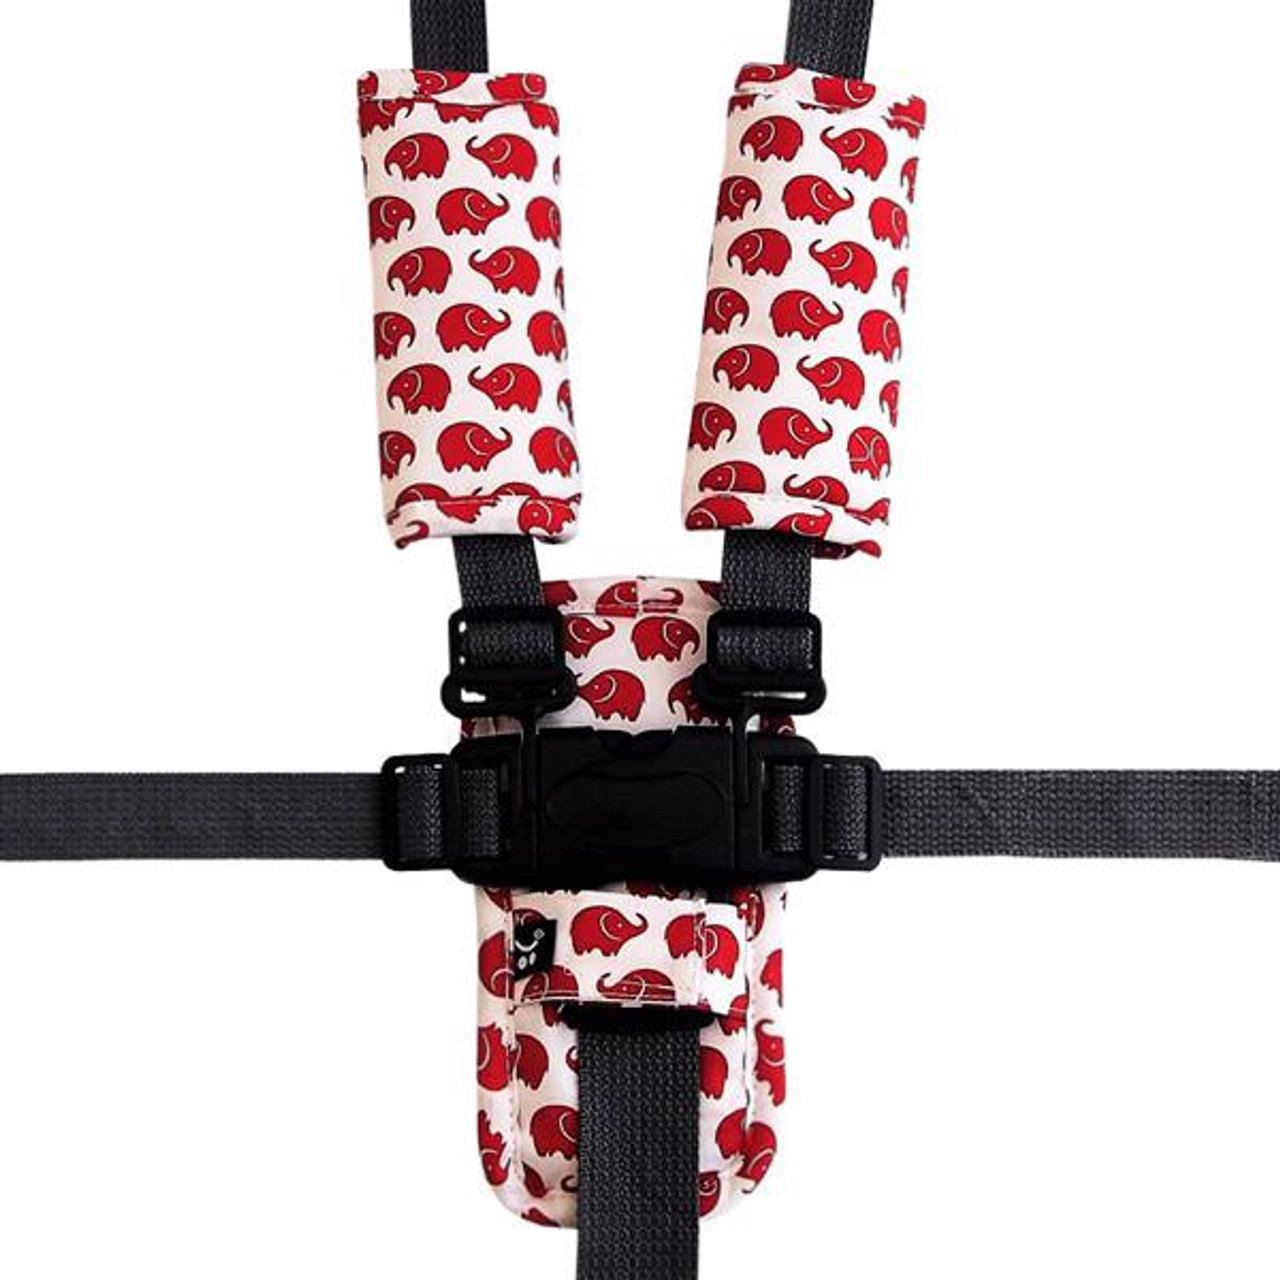 Outlook Pram Harness Cover Set - RED ELEPHANTS